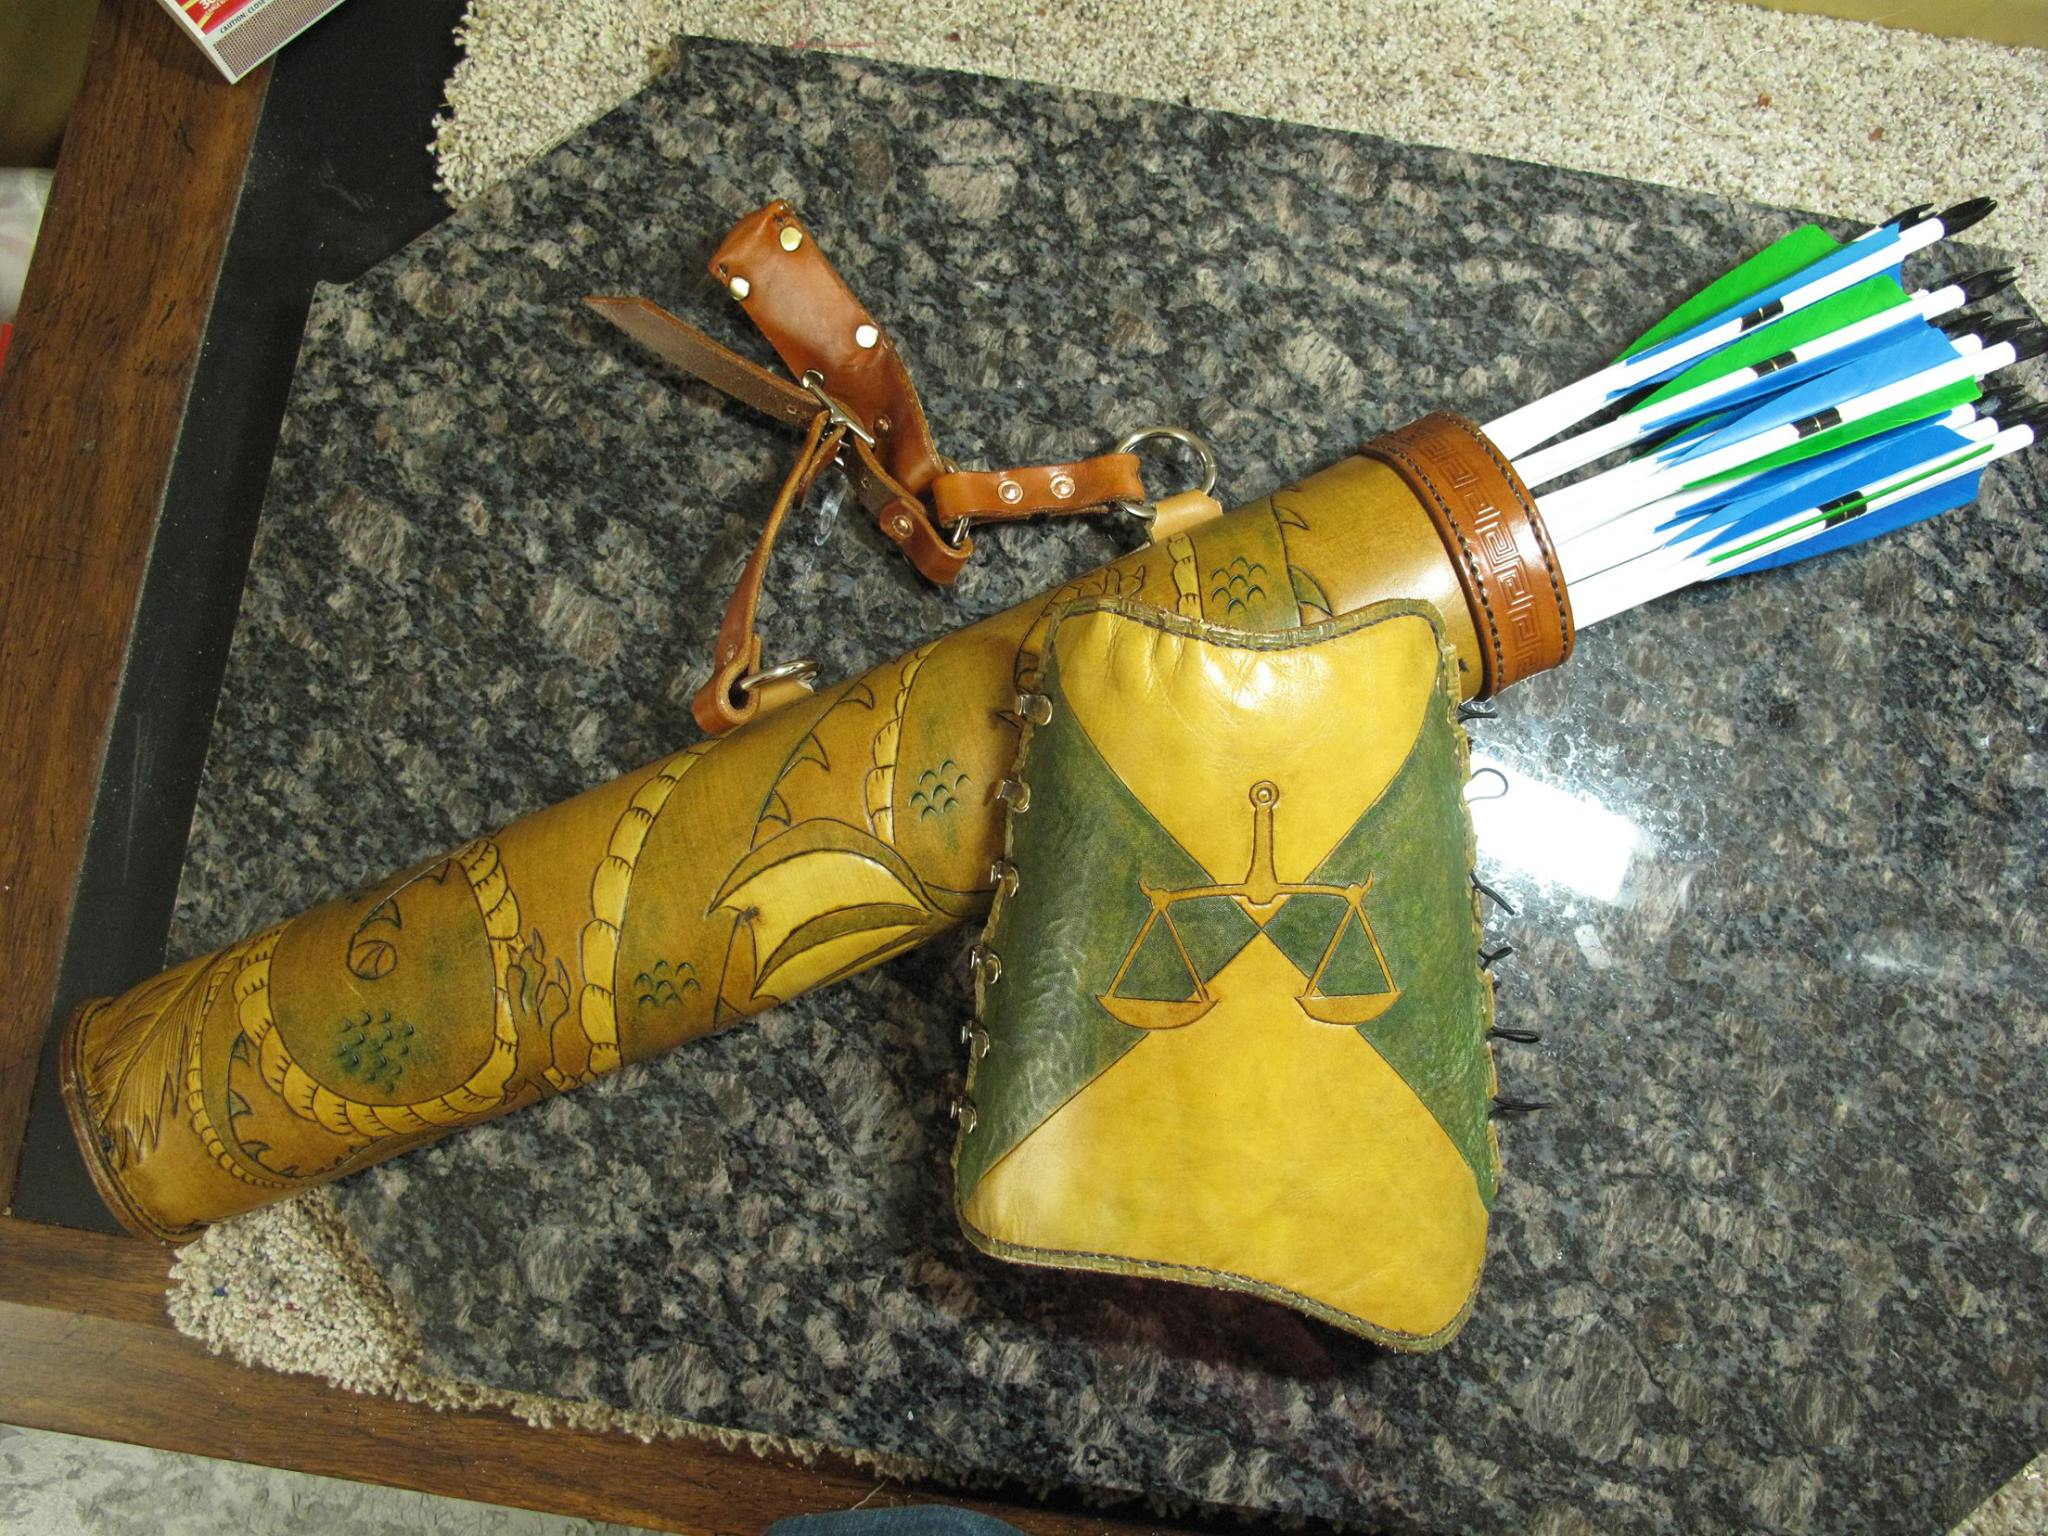 This is a quiver, arm guard and arrows our son, David, recently completed. Interested is custom work from him? Contact him at davnolan88@gmail.com.